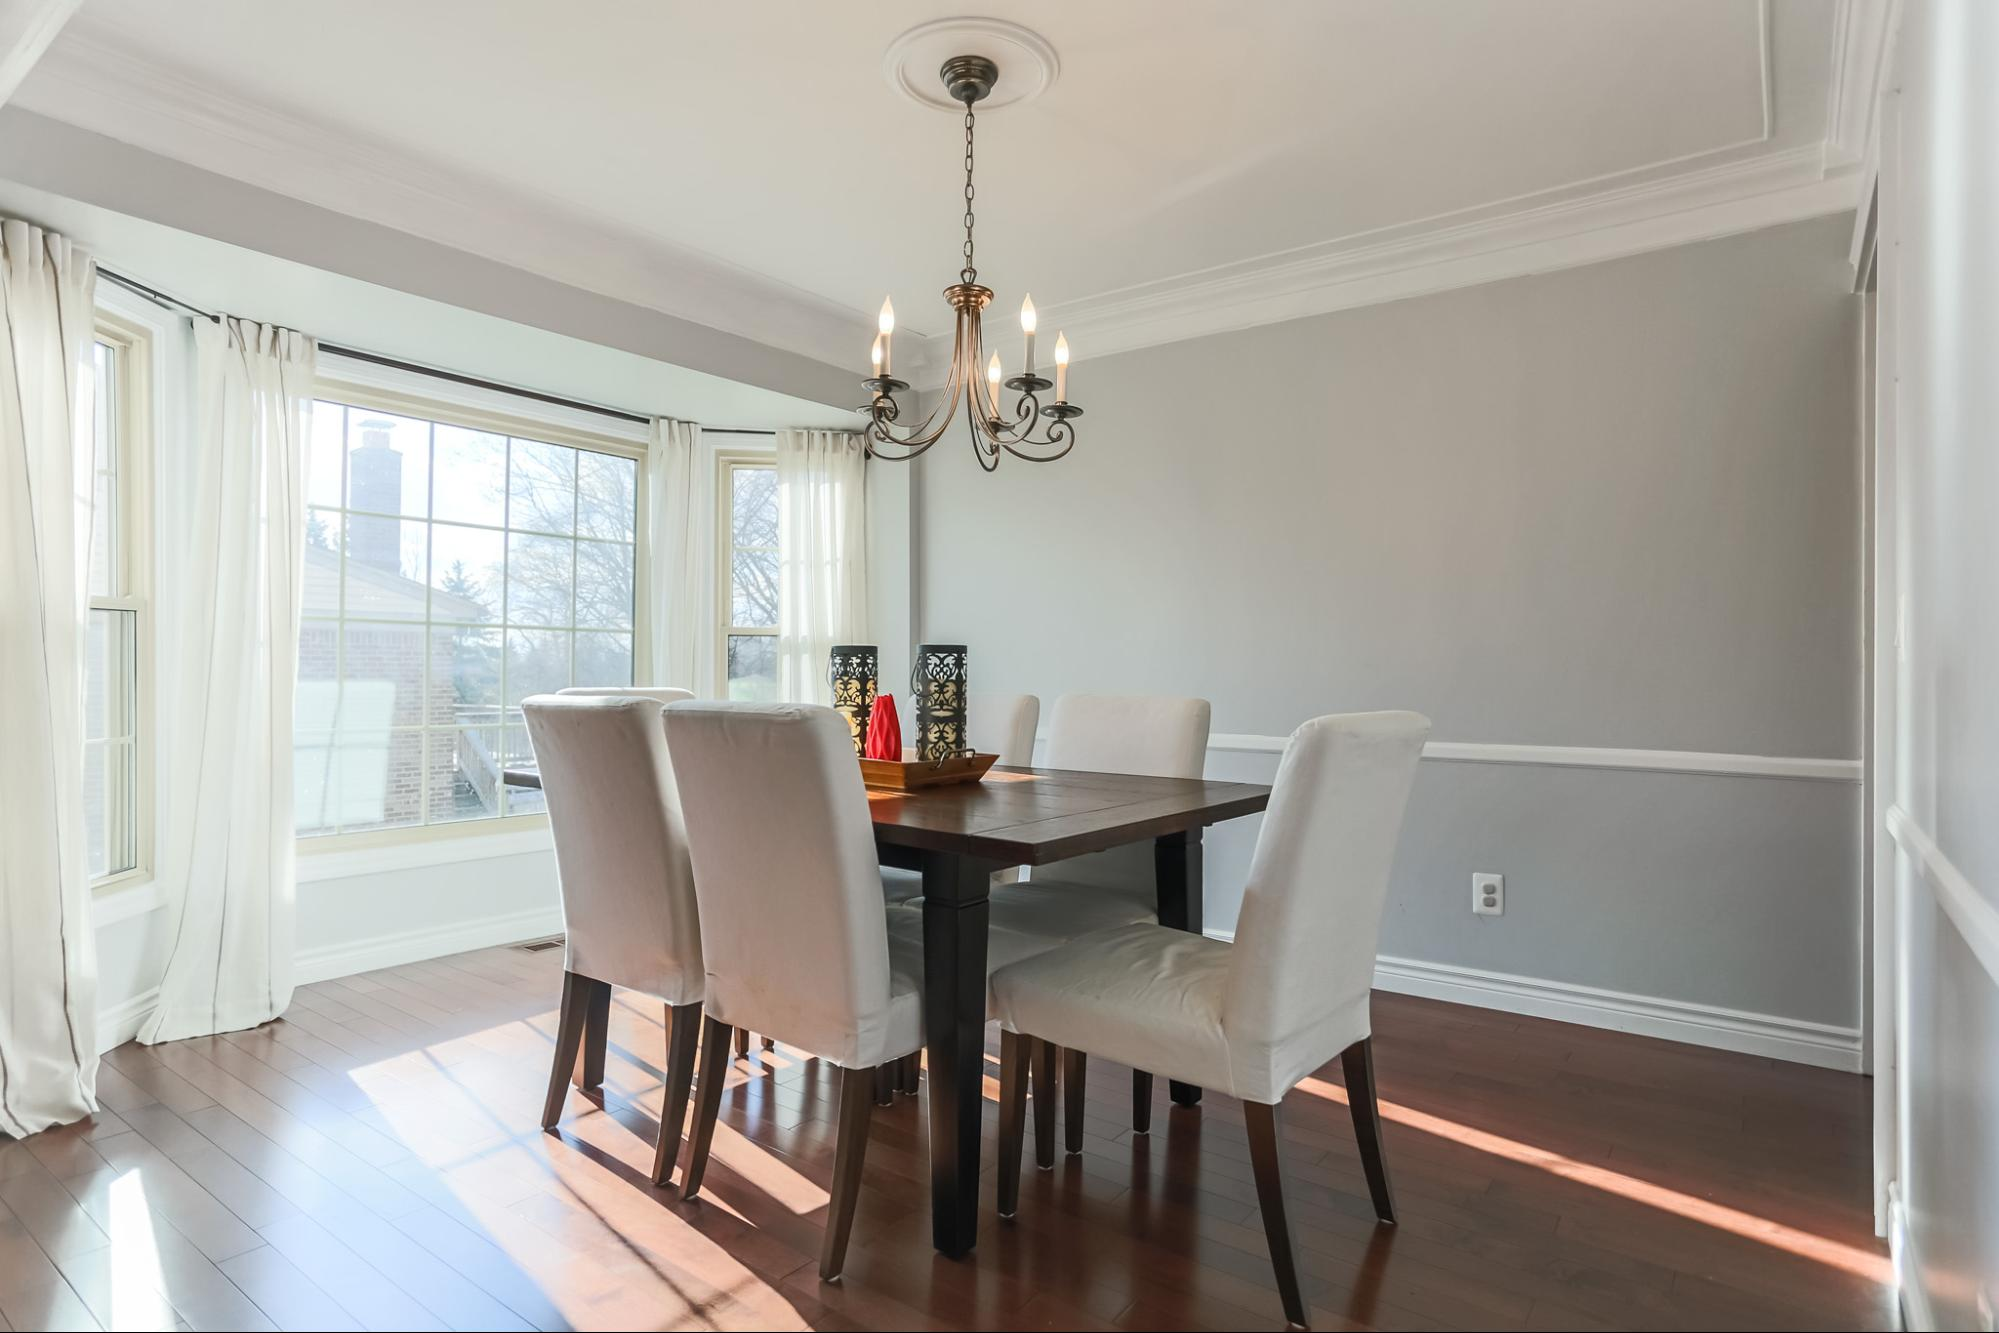 The formal dining area. I adore how the light falls into this room.